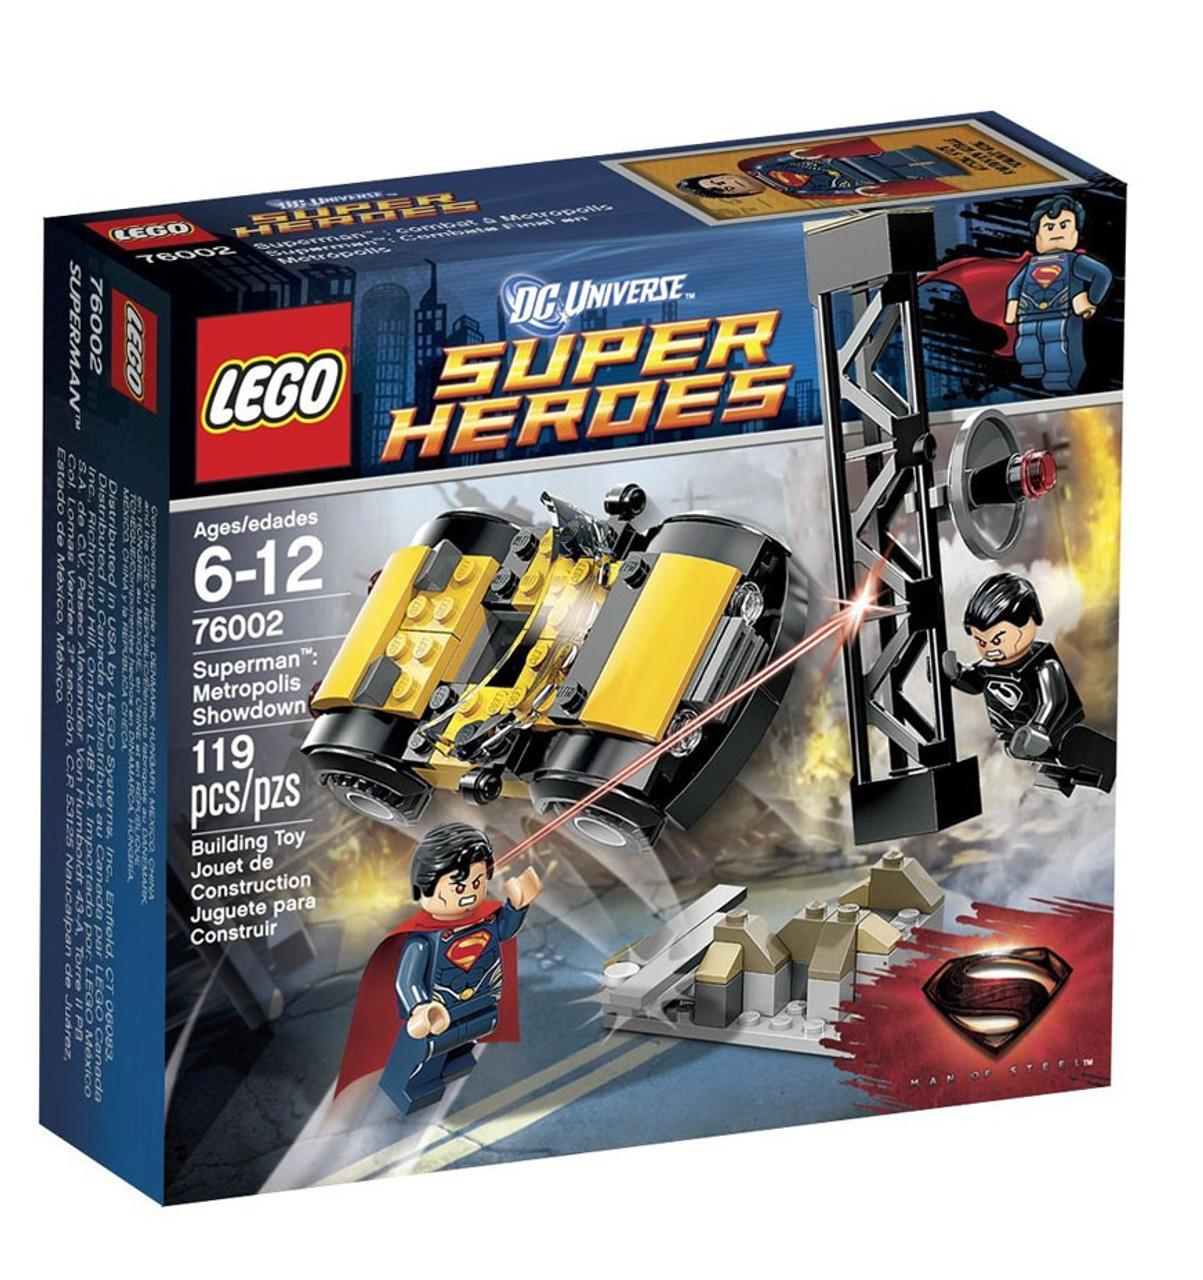 LEGO DC Universe Super Heroes Superman: Metropolis Showdown Set #76002